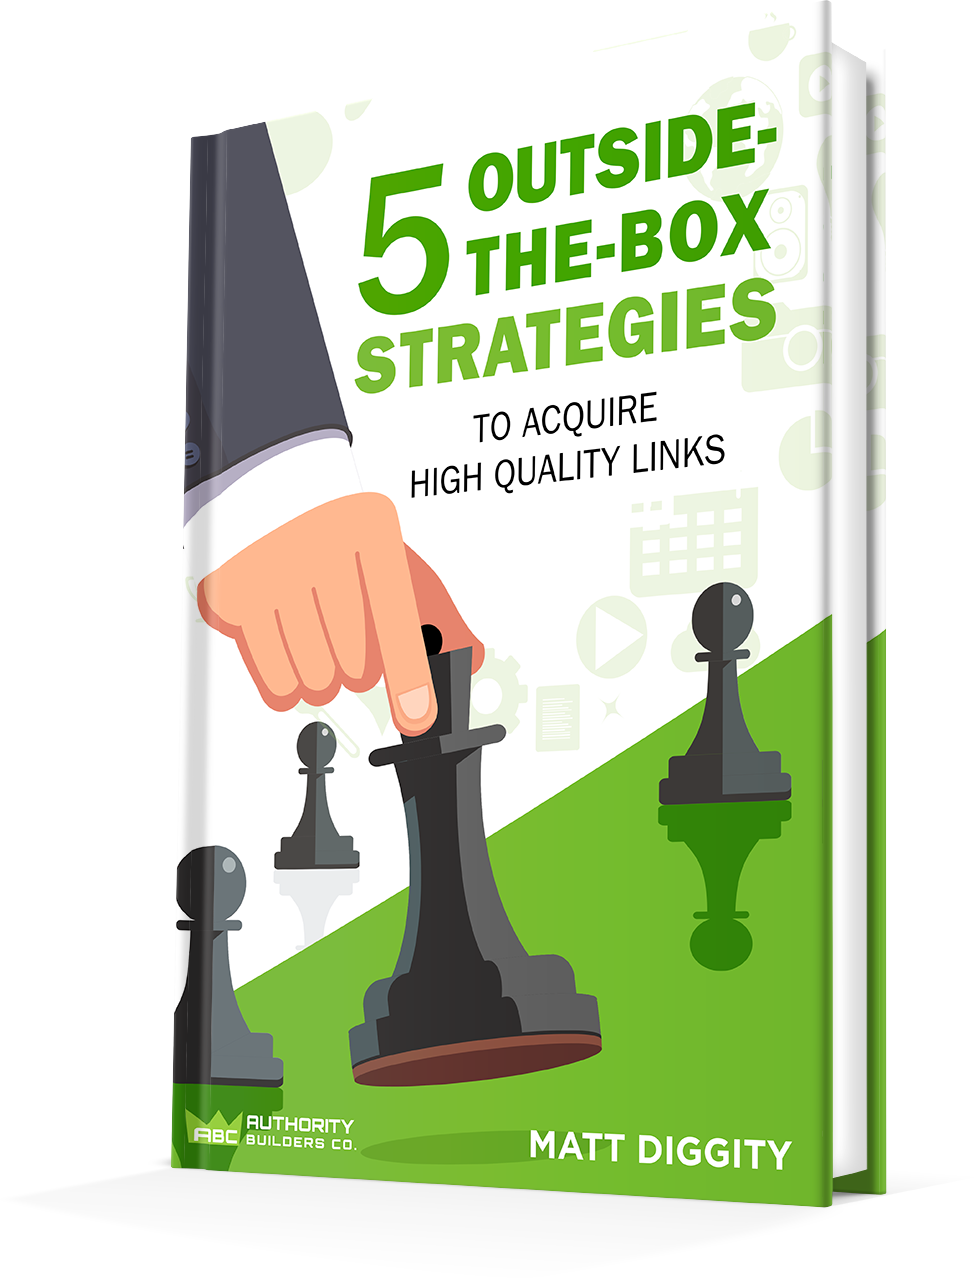 Matt Diggity's 5 Outside-the-Box Strategies to Acquire High Quality Links